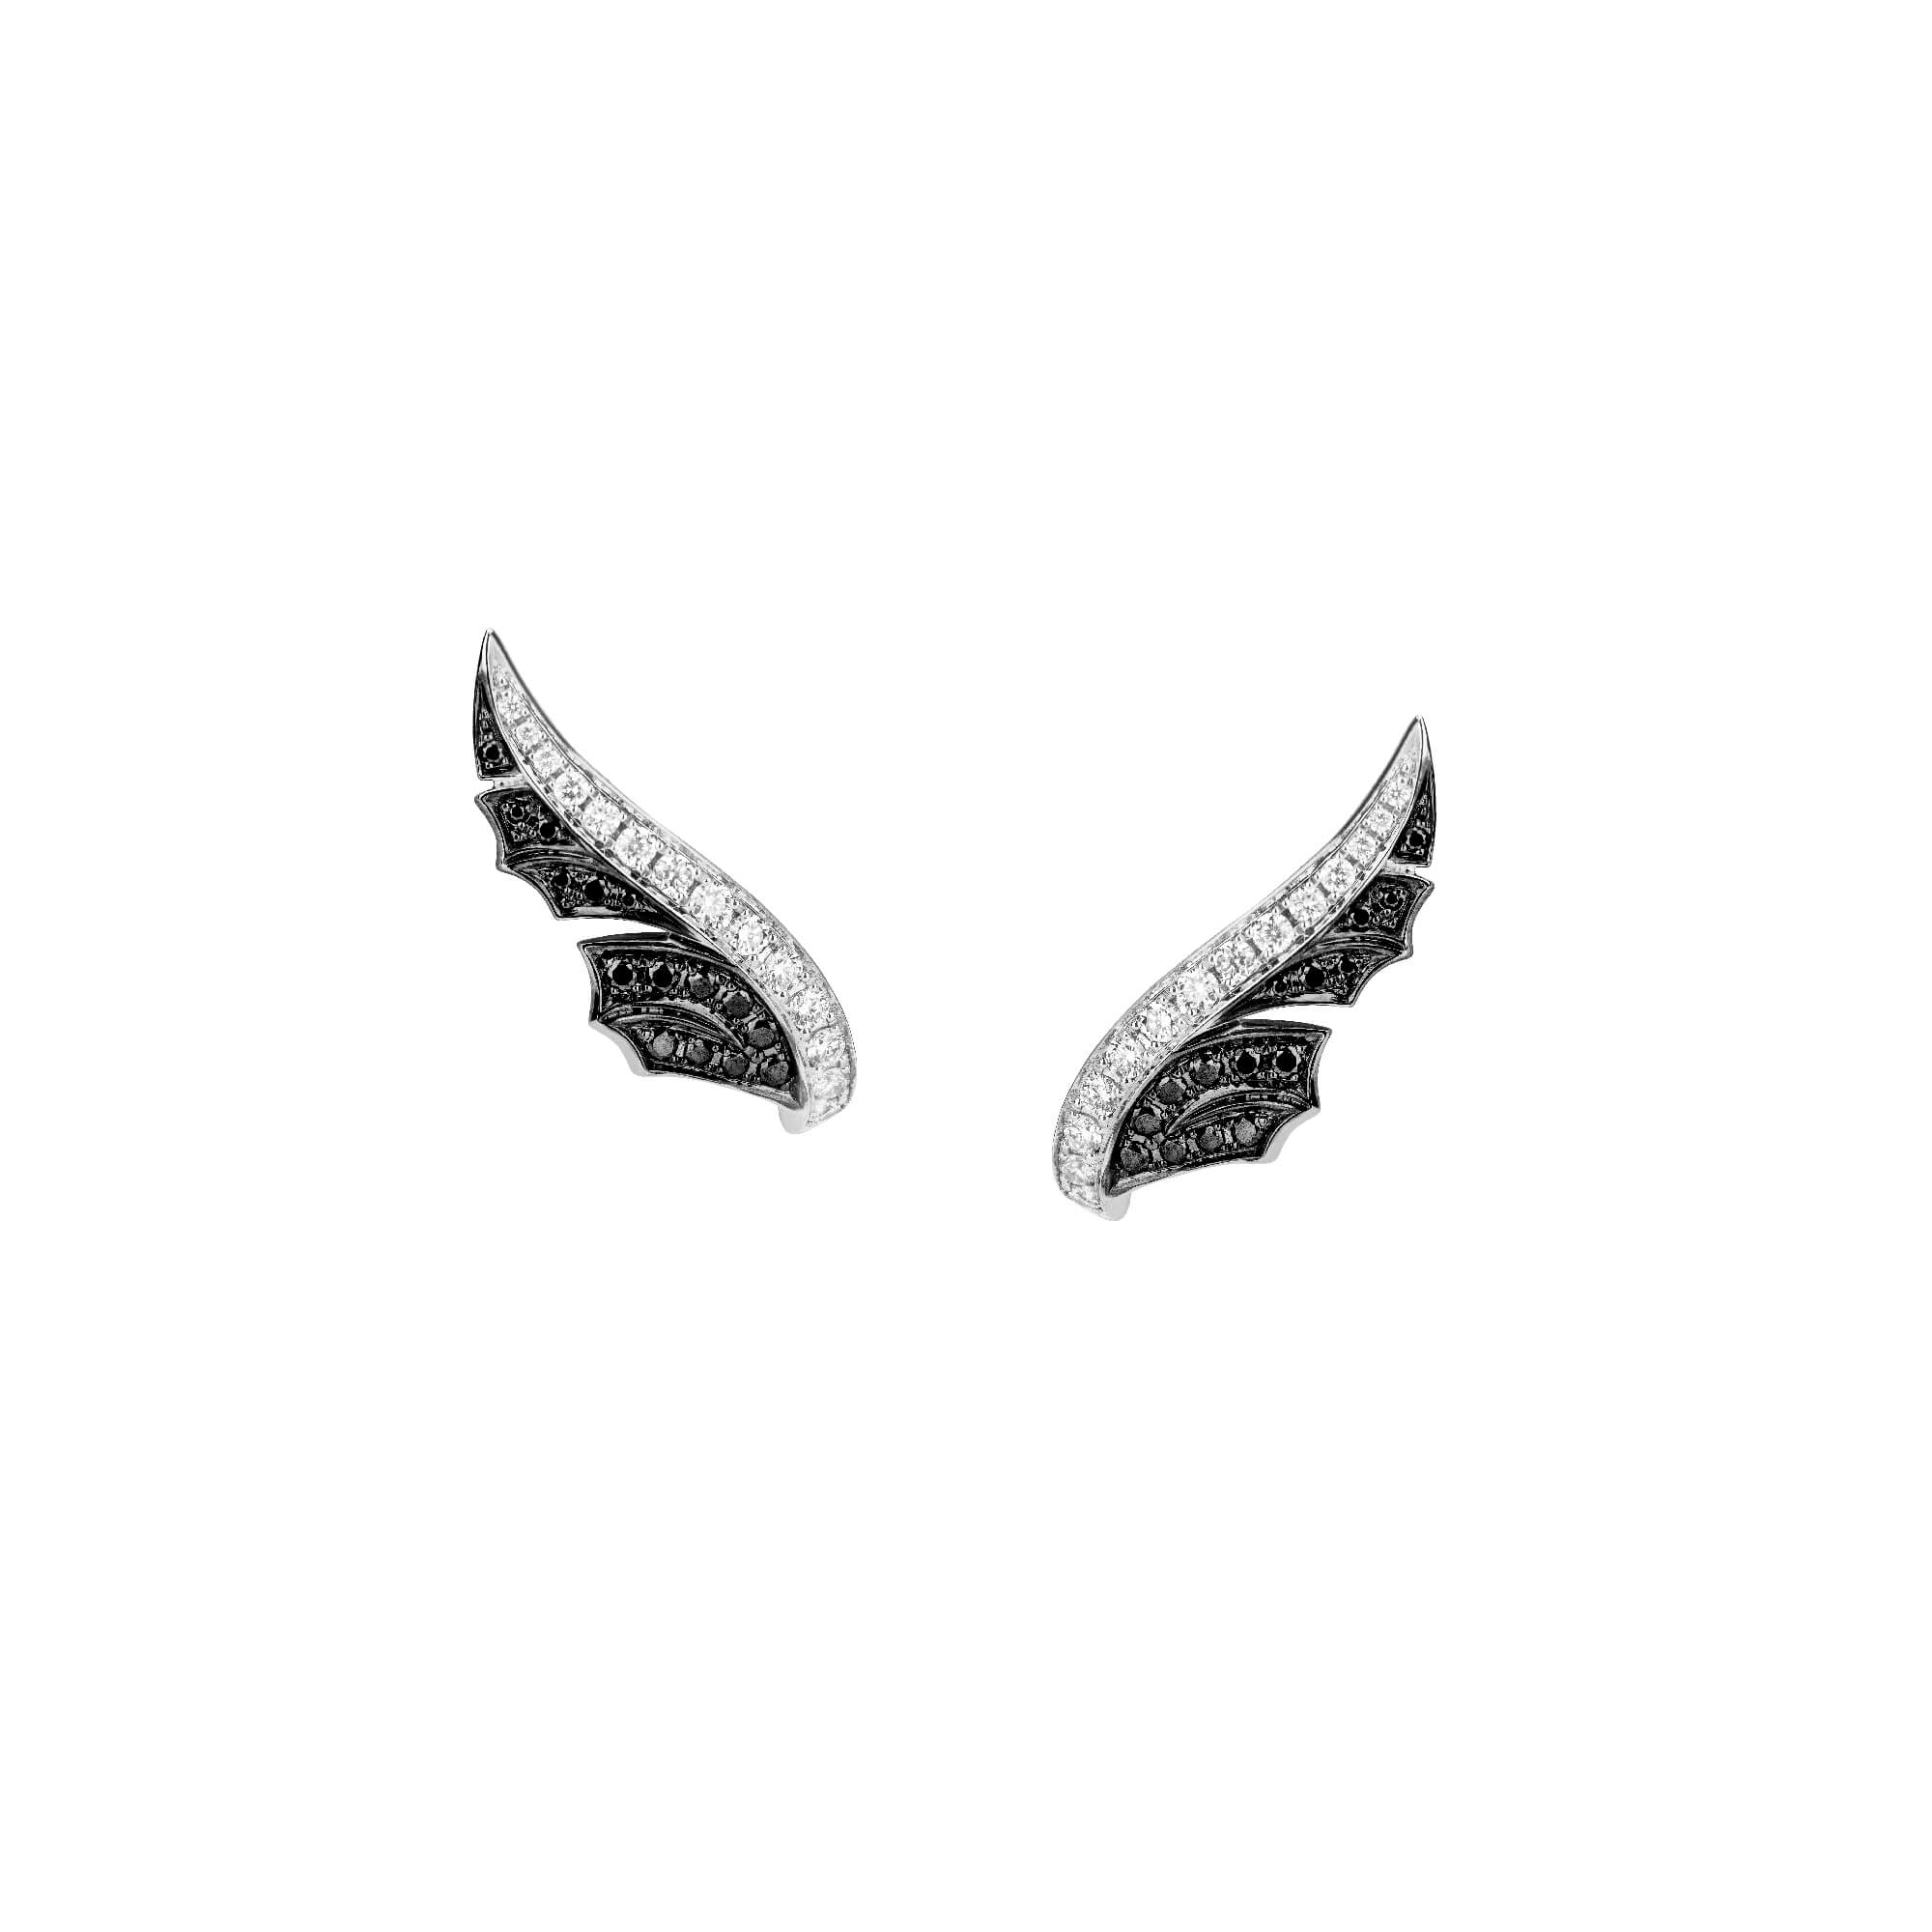 White Gold Pavé Feather Earstuds With Black Diamonds | Magnipheasant